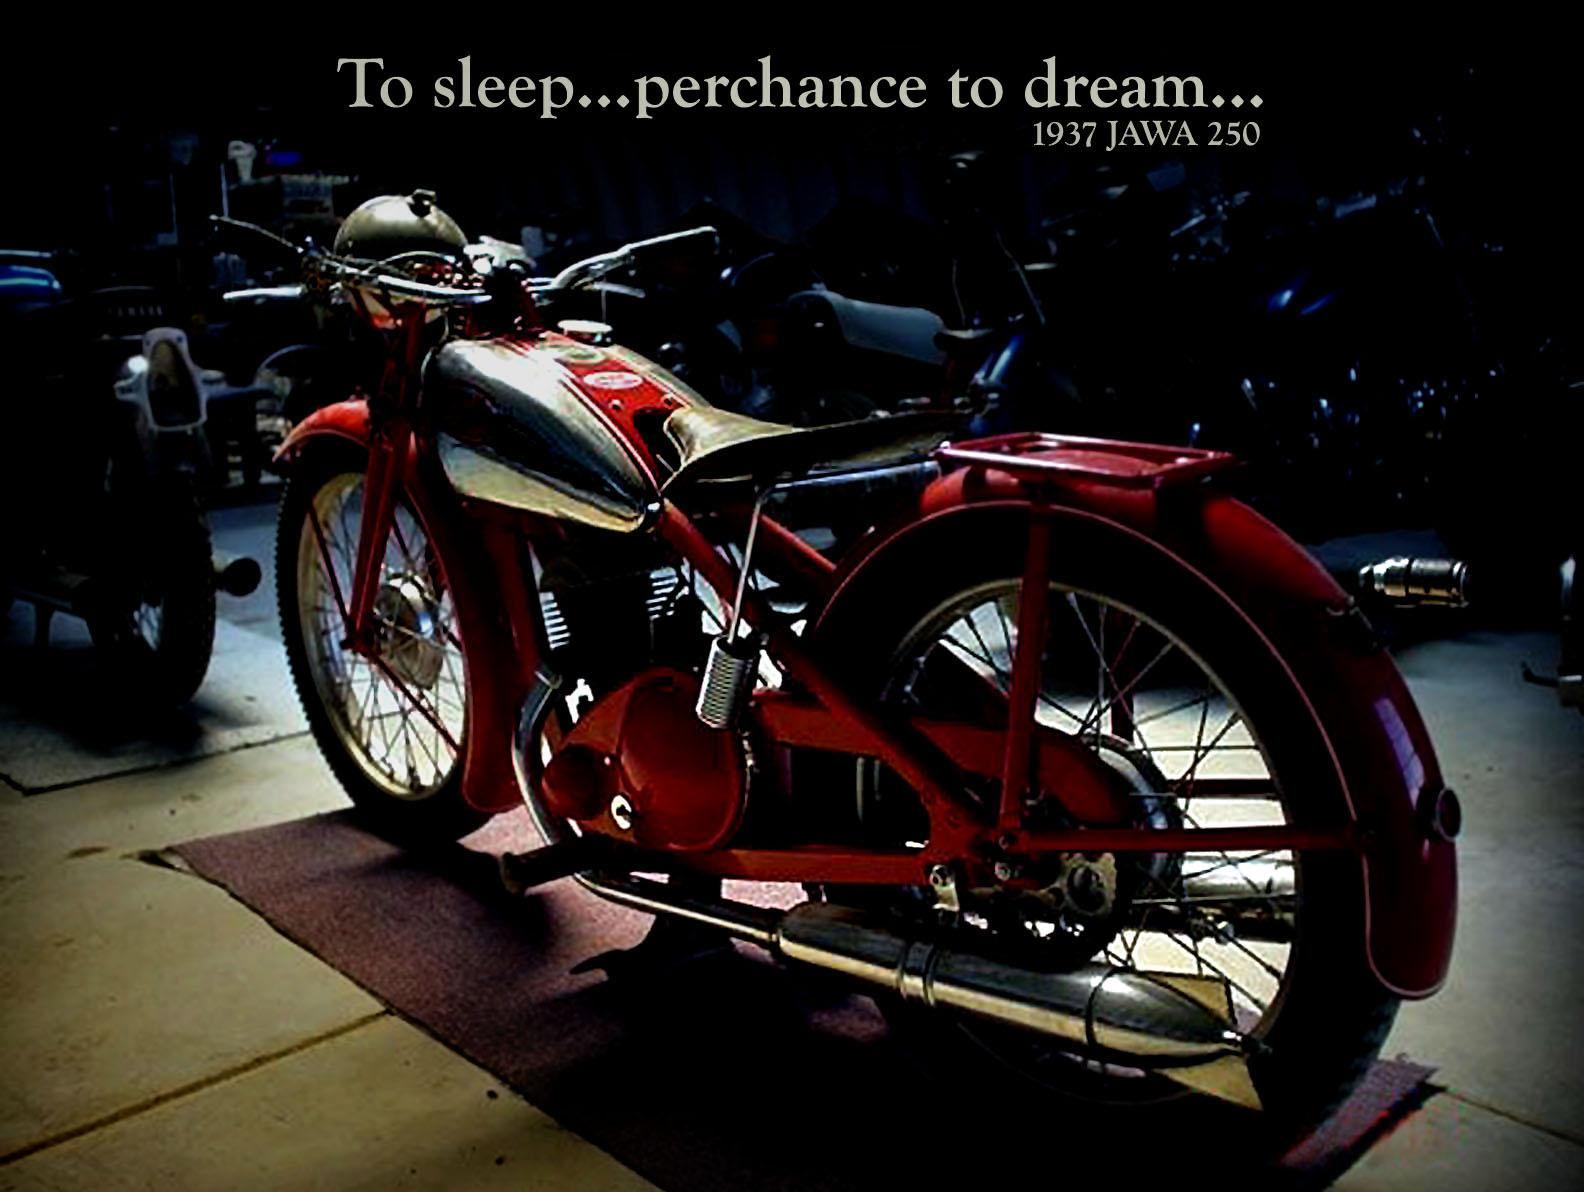 Motorcycle in dark room.